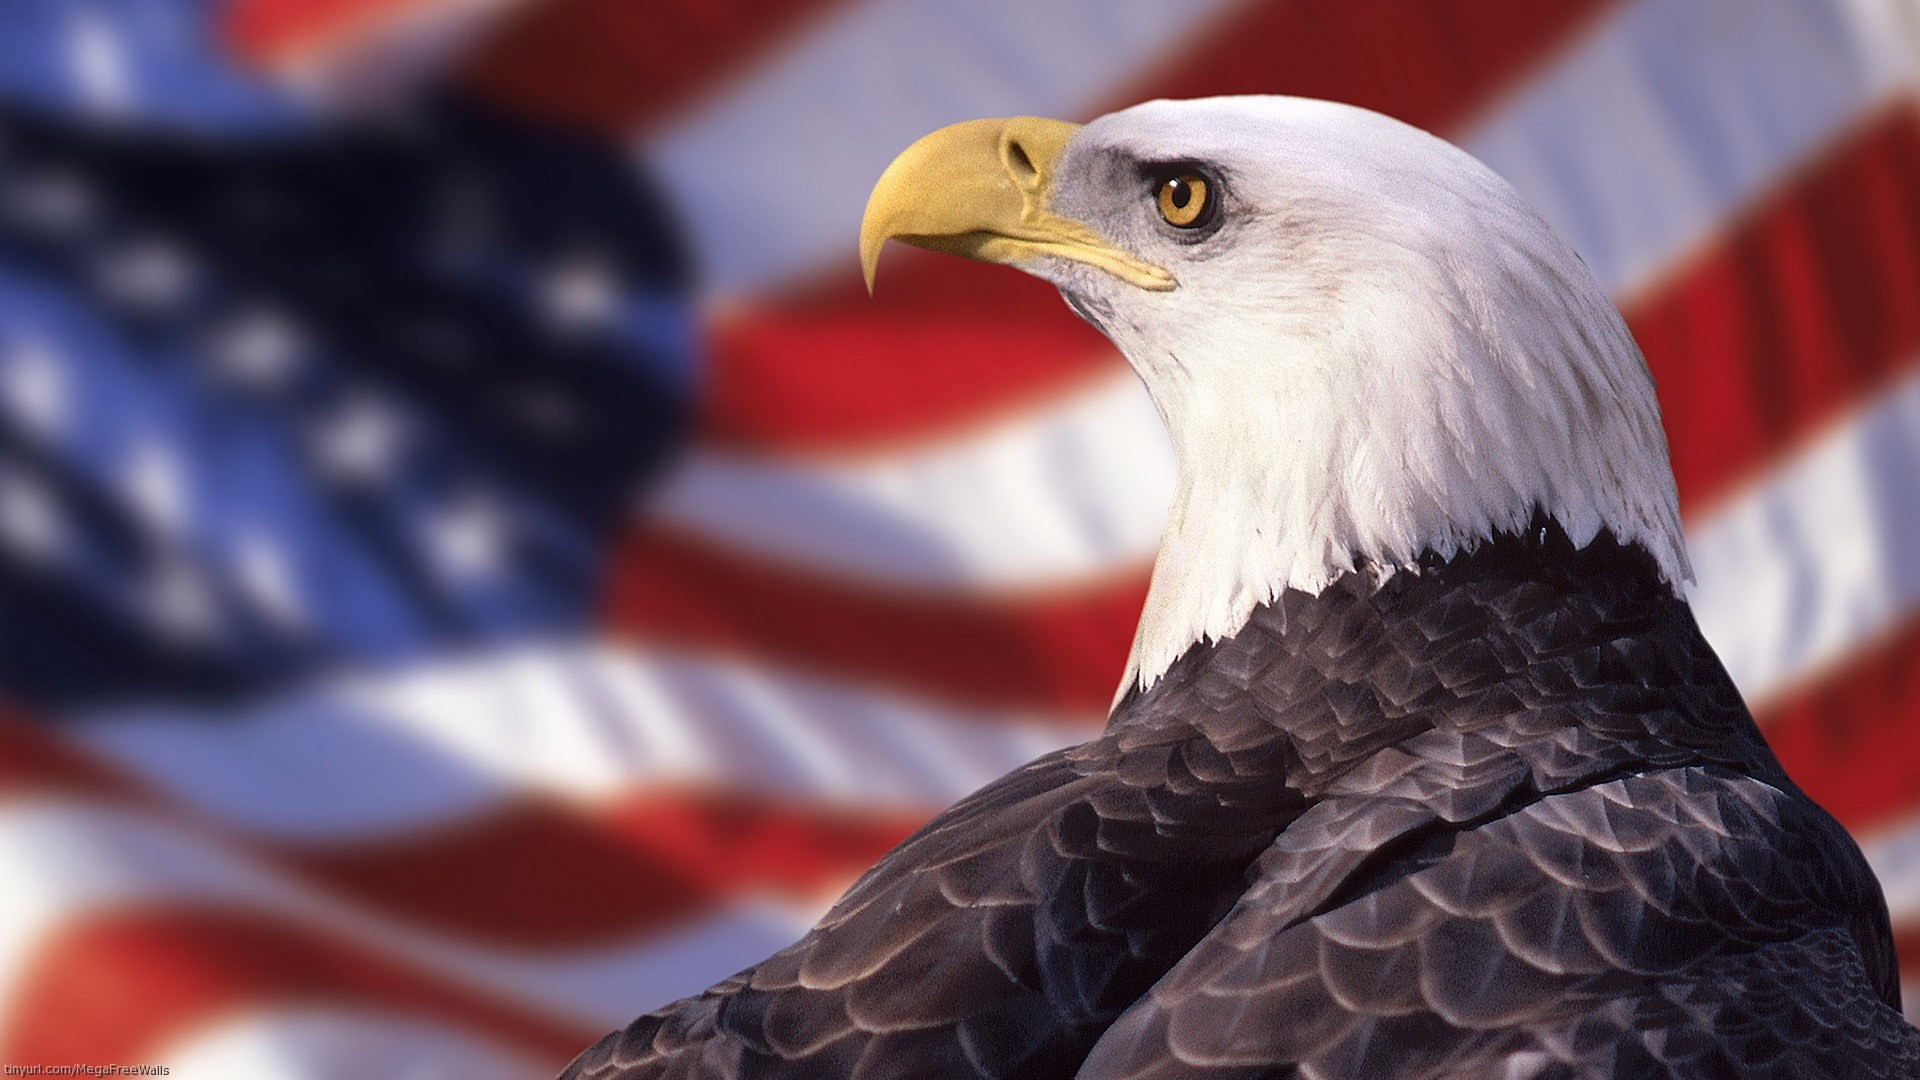 american flag screen backgrounds free